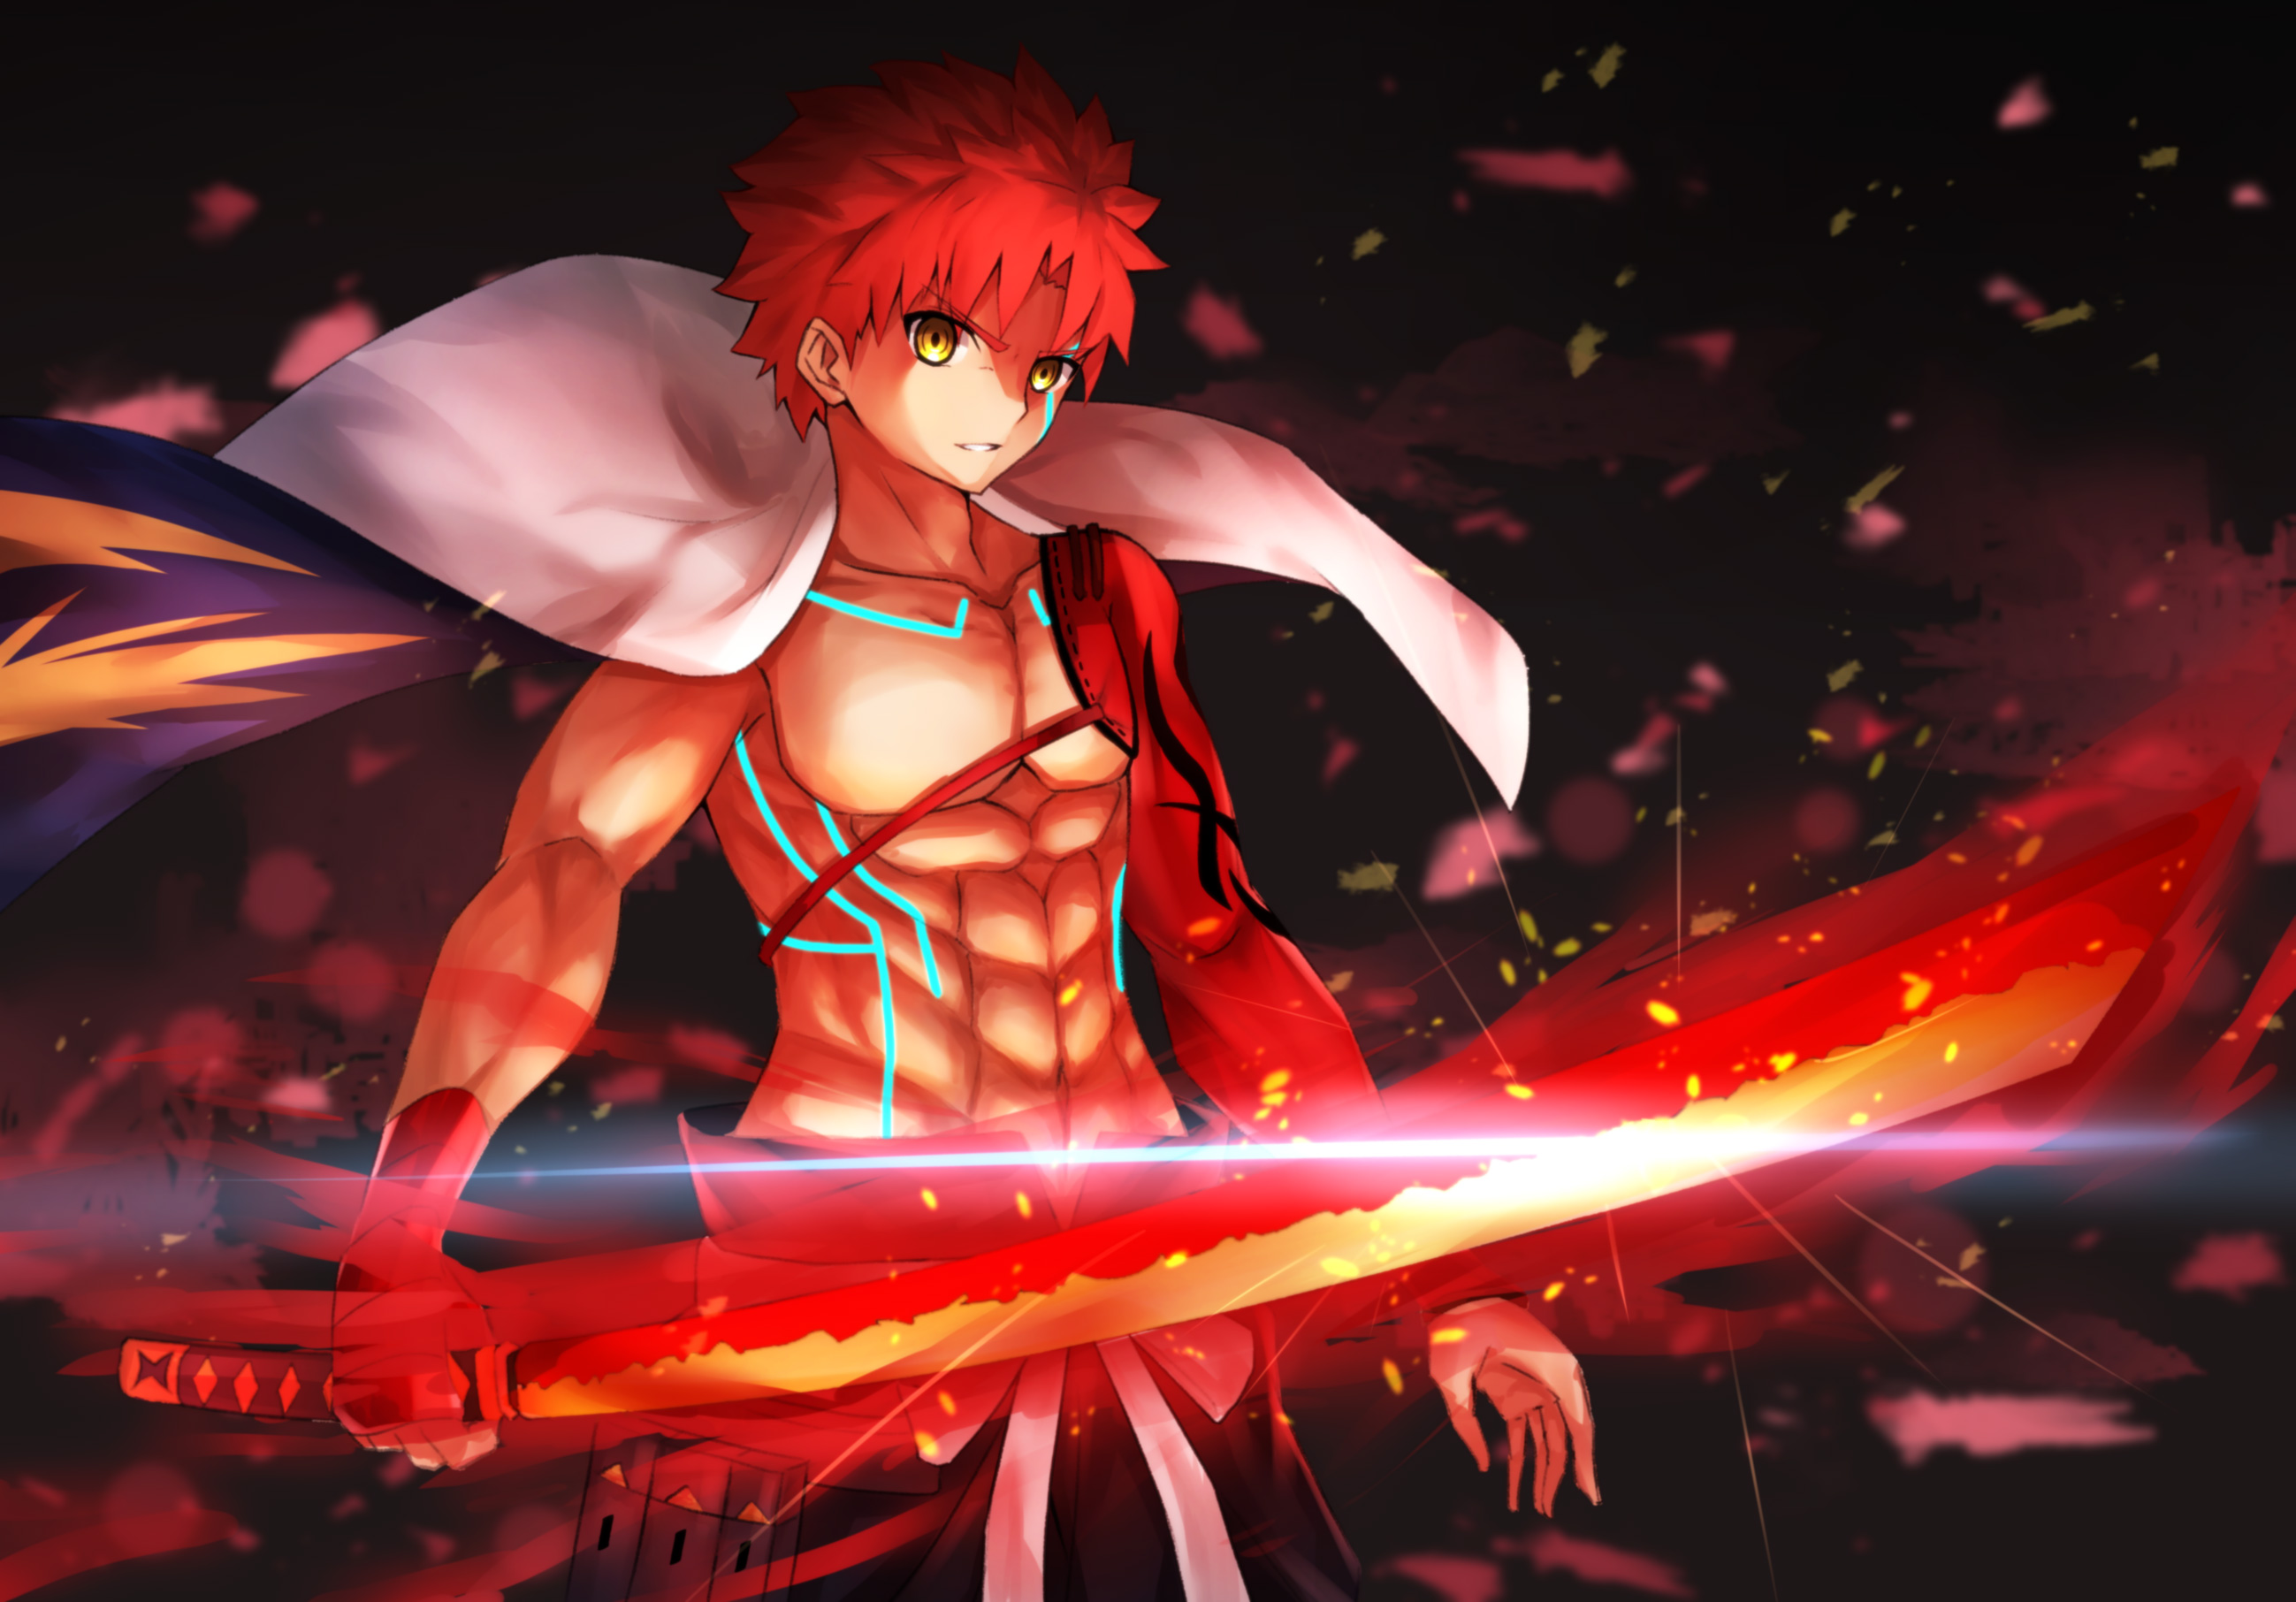 Fate/Stay Night HD Wallpaper | Background Image | 1920x1080 | ID:850891 - Wallpaper Abyss